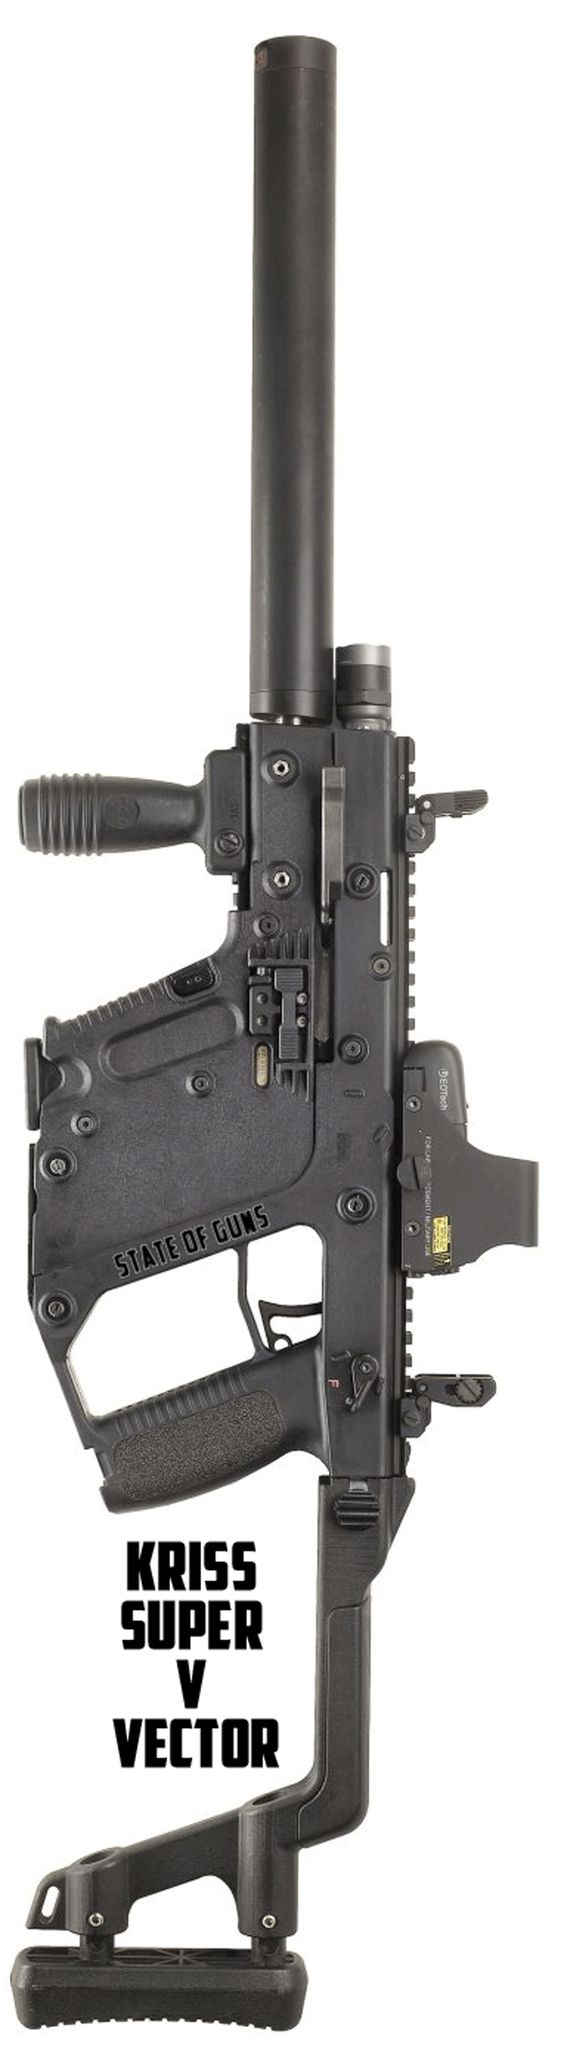 Kriss Super V Vector system with capability to adapt to all existing small arms calibers, including .223 Rem and .308 is a perfect submachine gun.